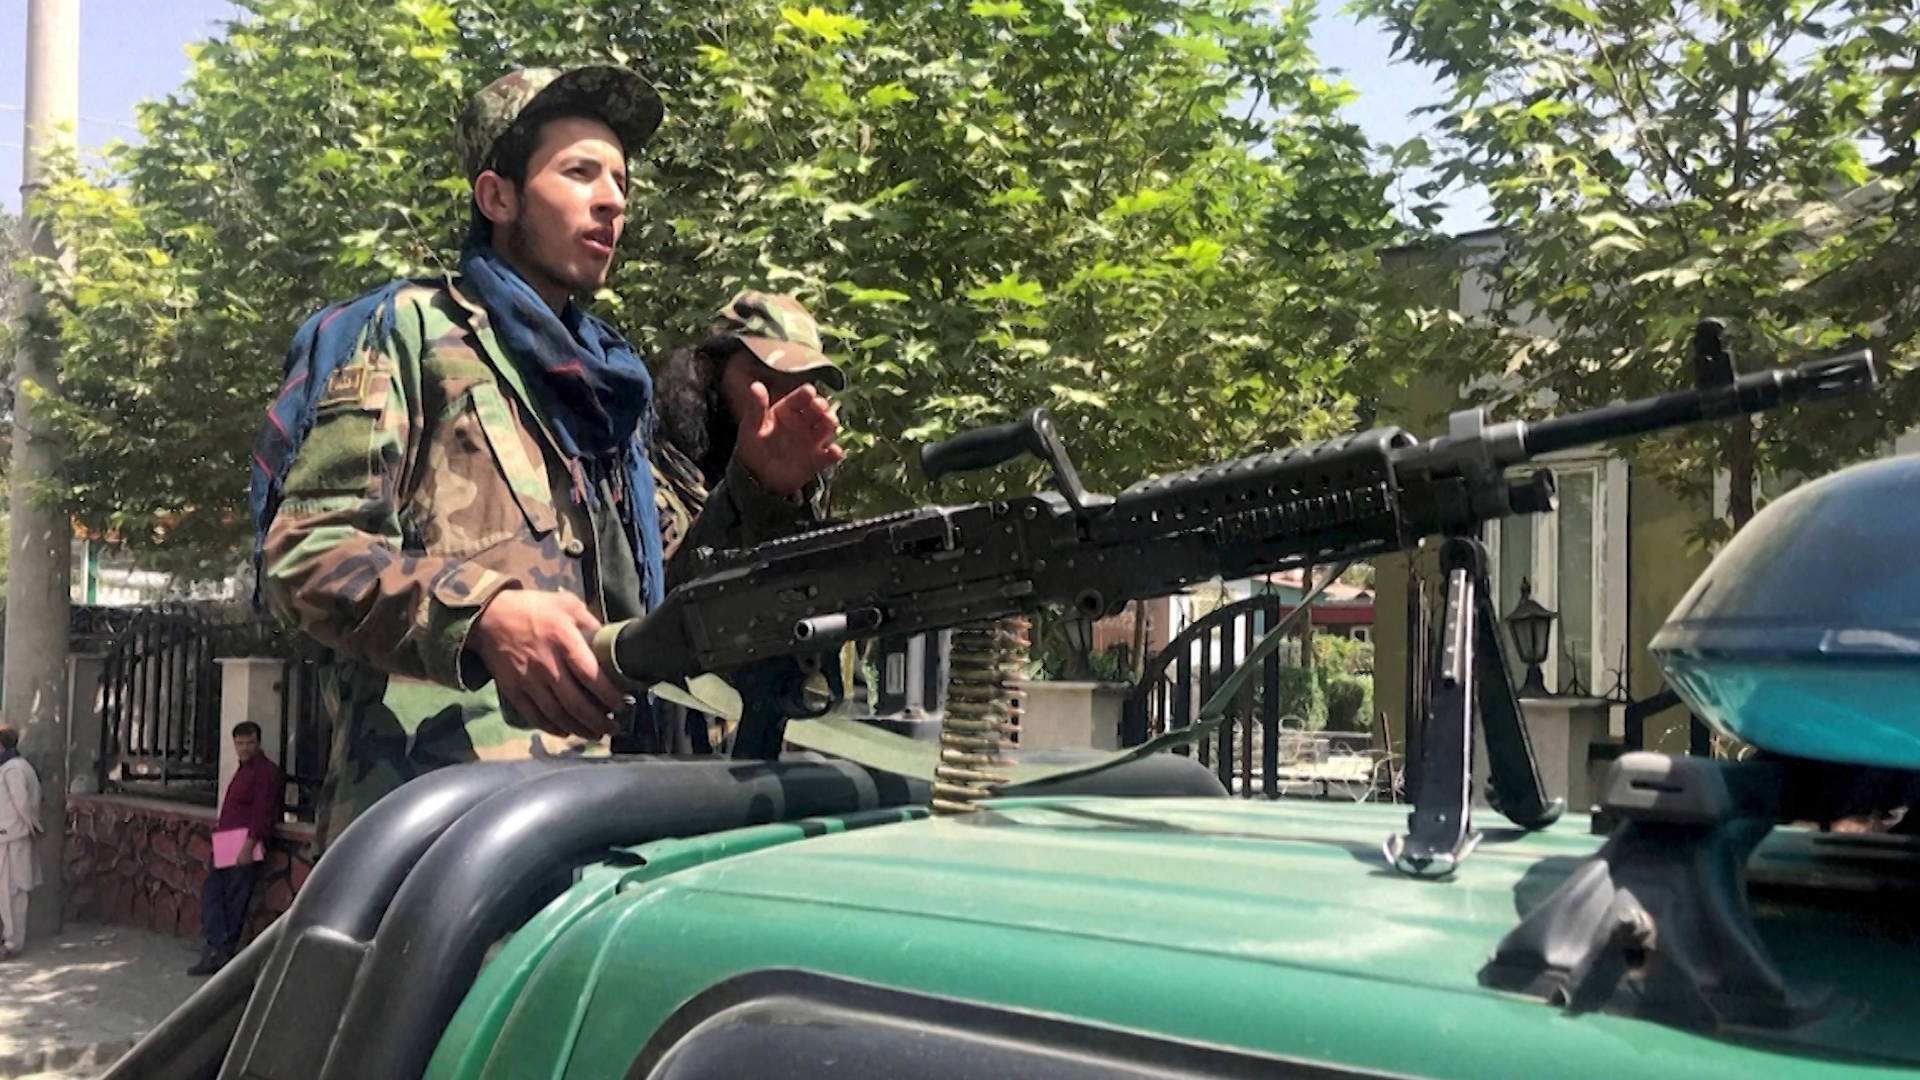 Read more about the article The Taliban's Resurgence Was Years in Making & Aided by Trump, Who Sidelined Afghan Gov't in Talks